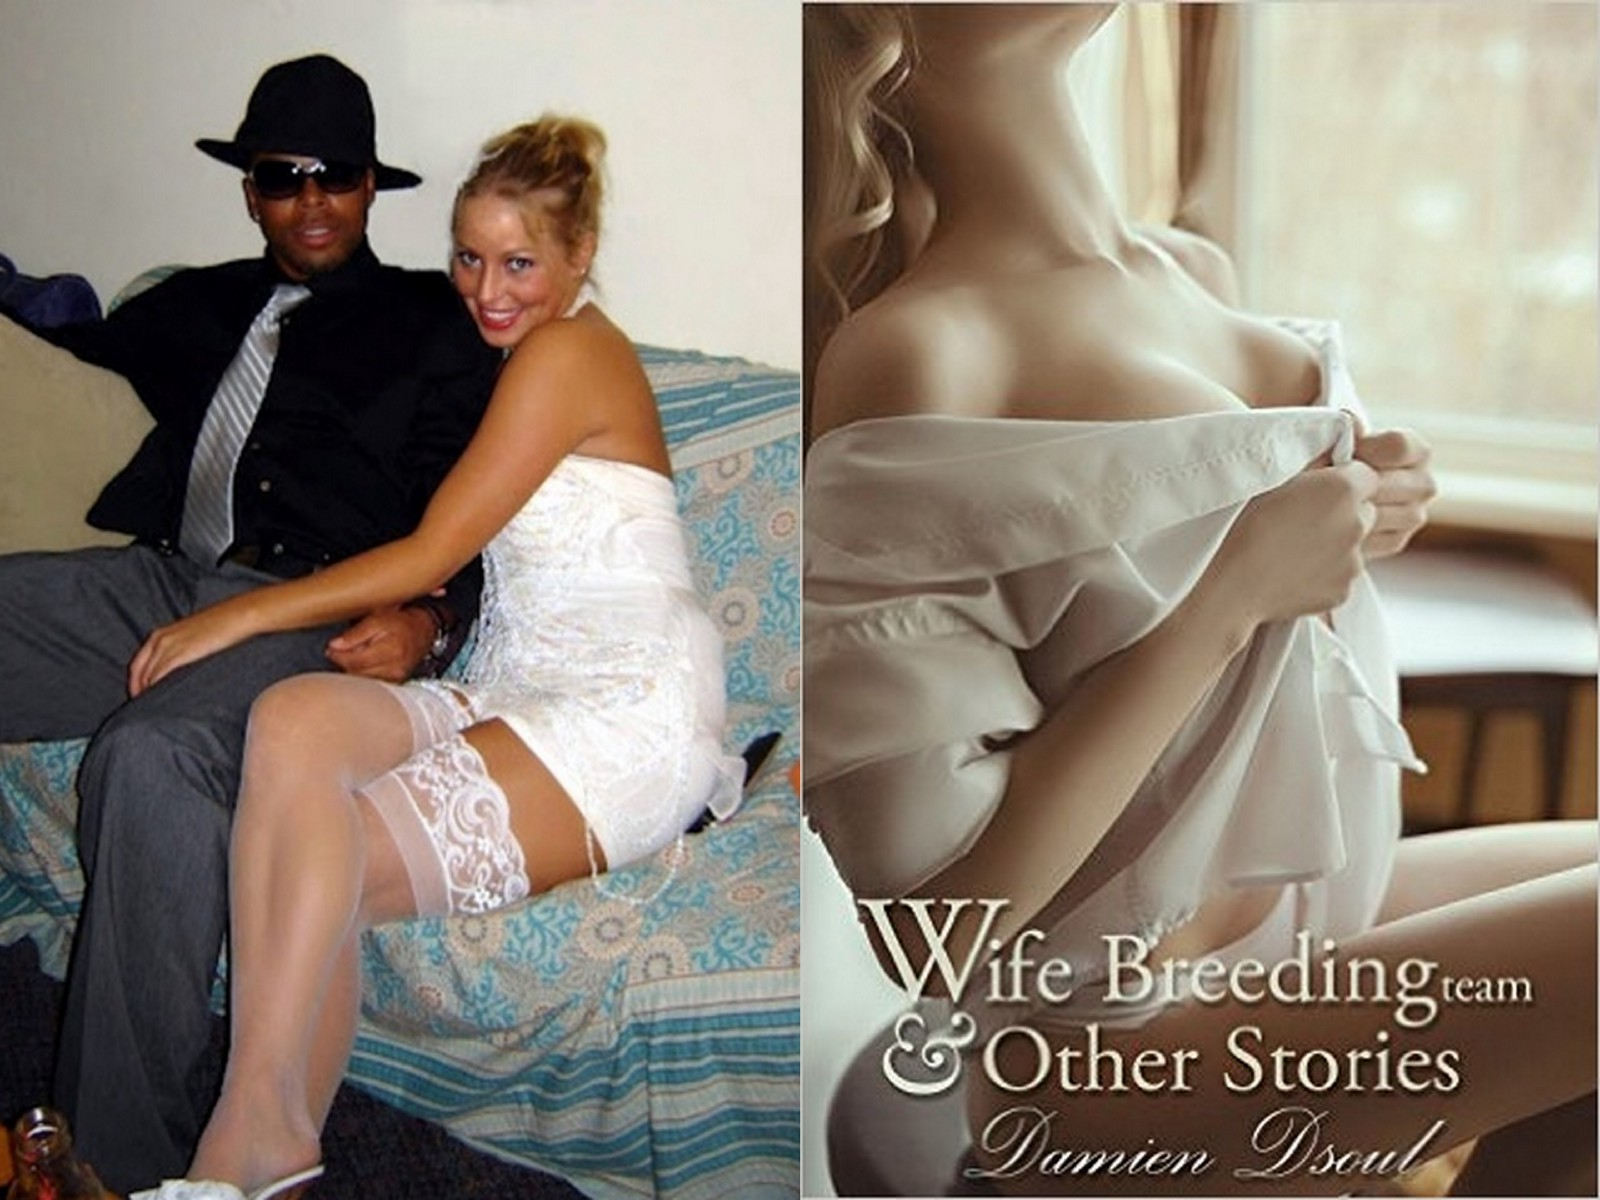 Interracial breeding stories free very